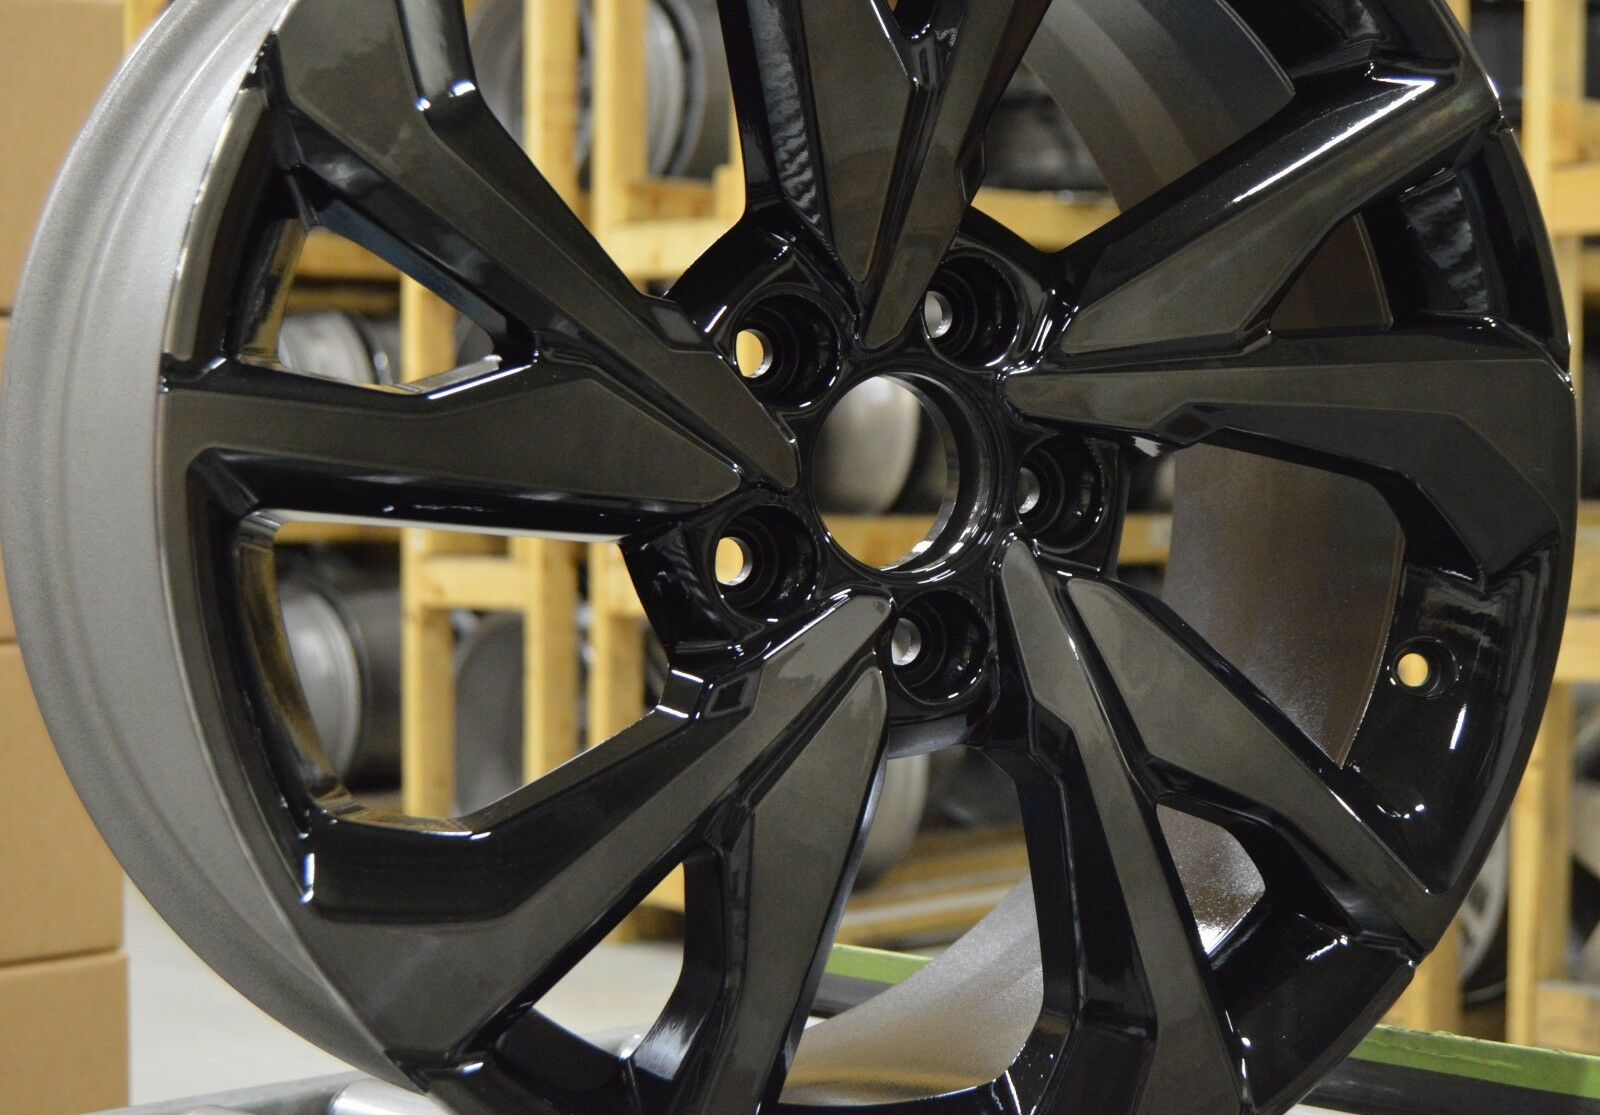 Used Honda Wheels & Hubcaps for Sale